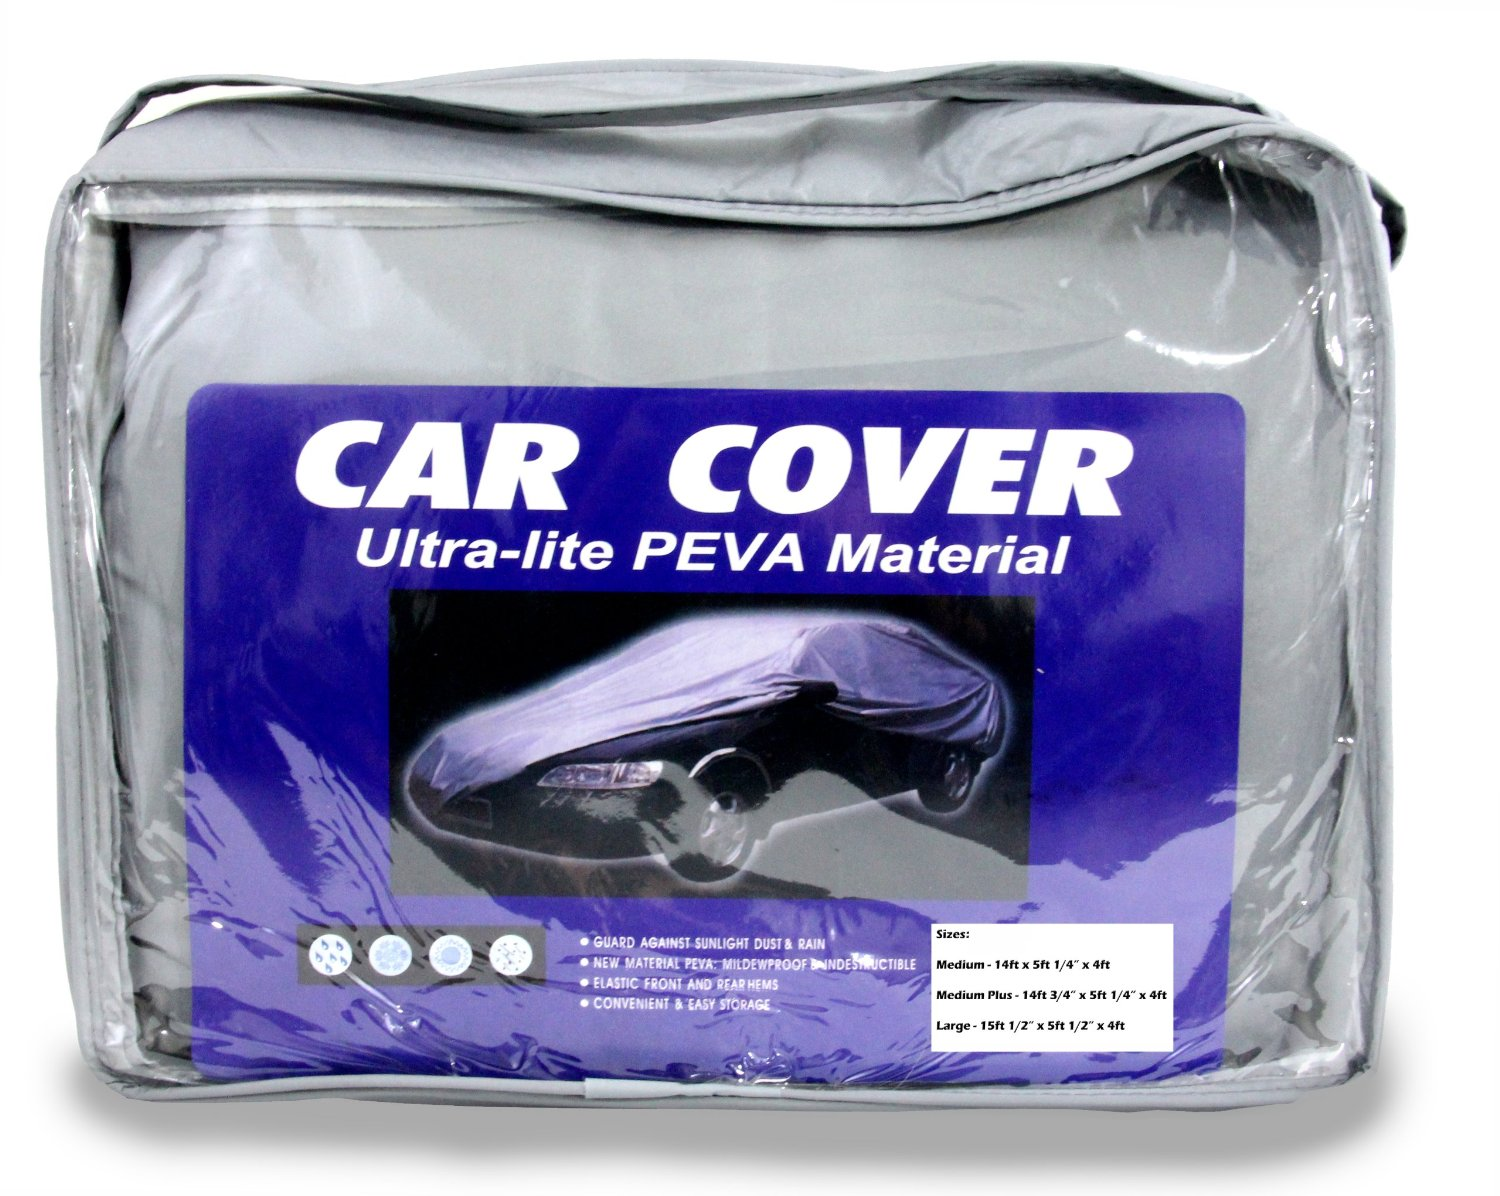 Car Cover Ultra-Lite Peva Material Size XL